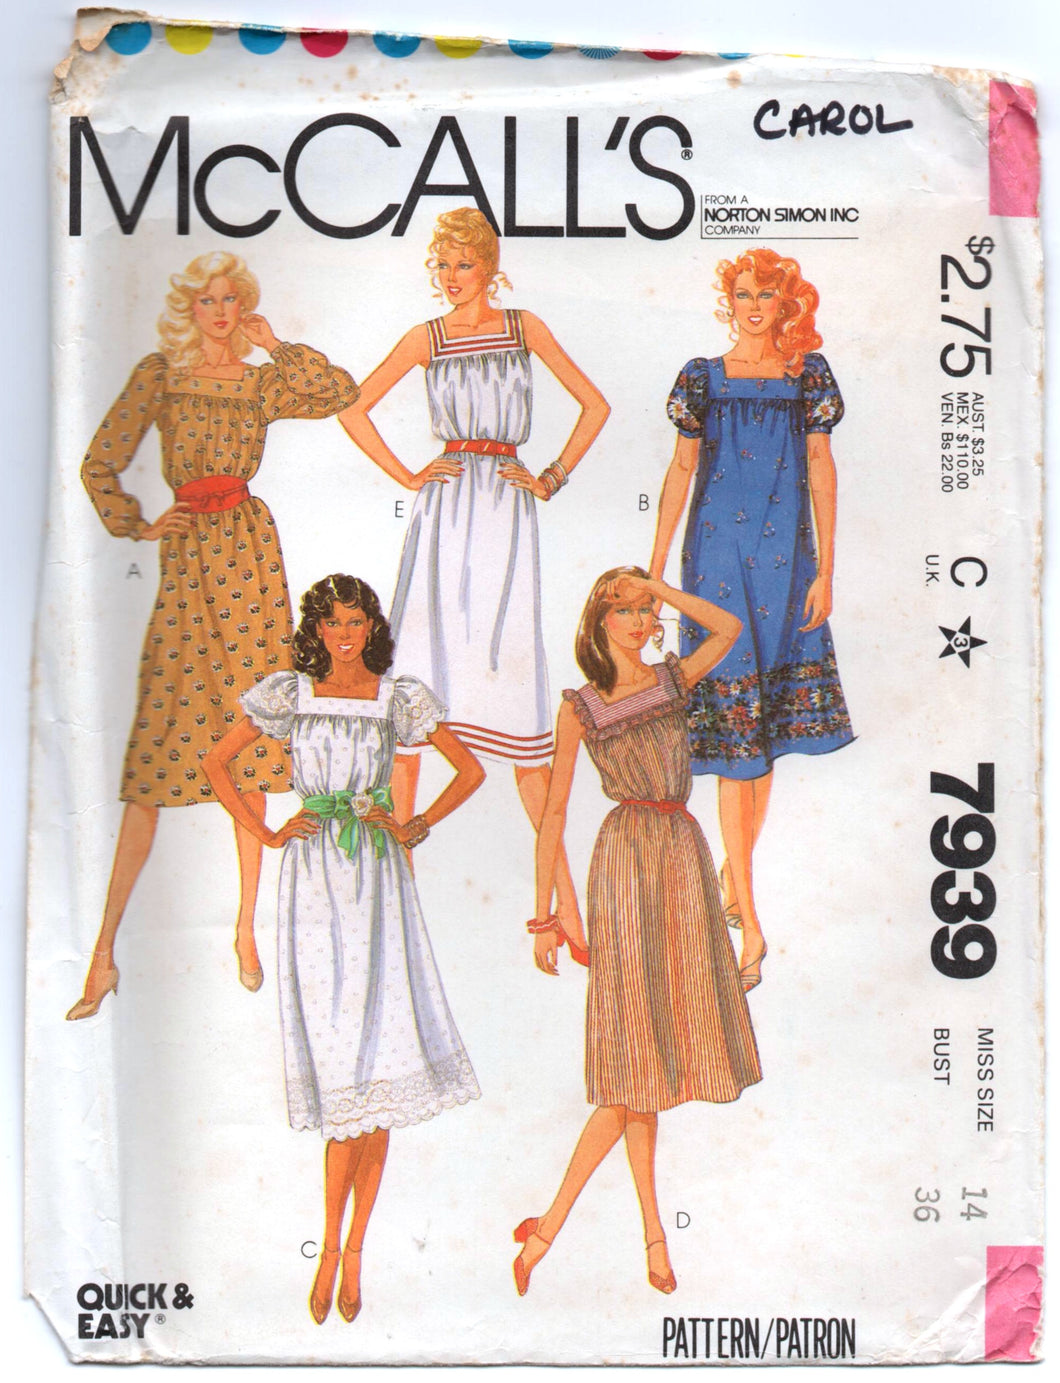 1980's McCall's Summer Dress Square Neckline and Puff Sleeves Pattern - Bust 36